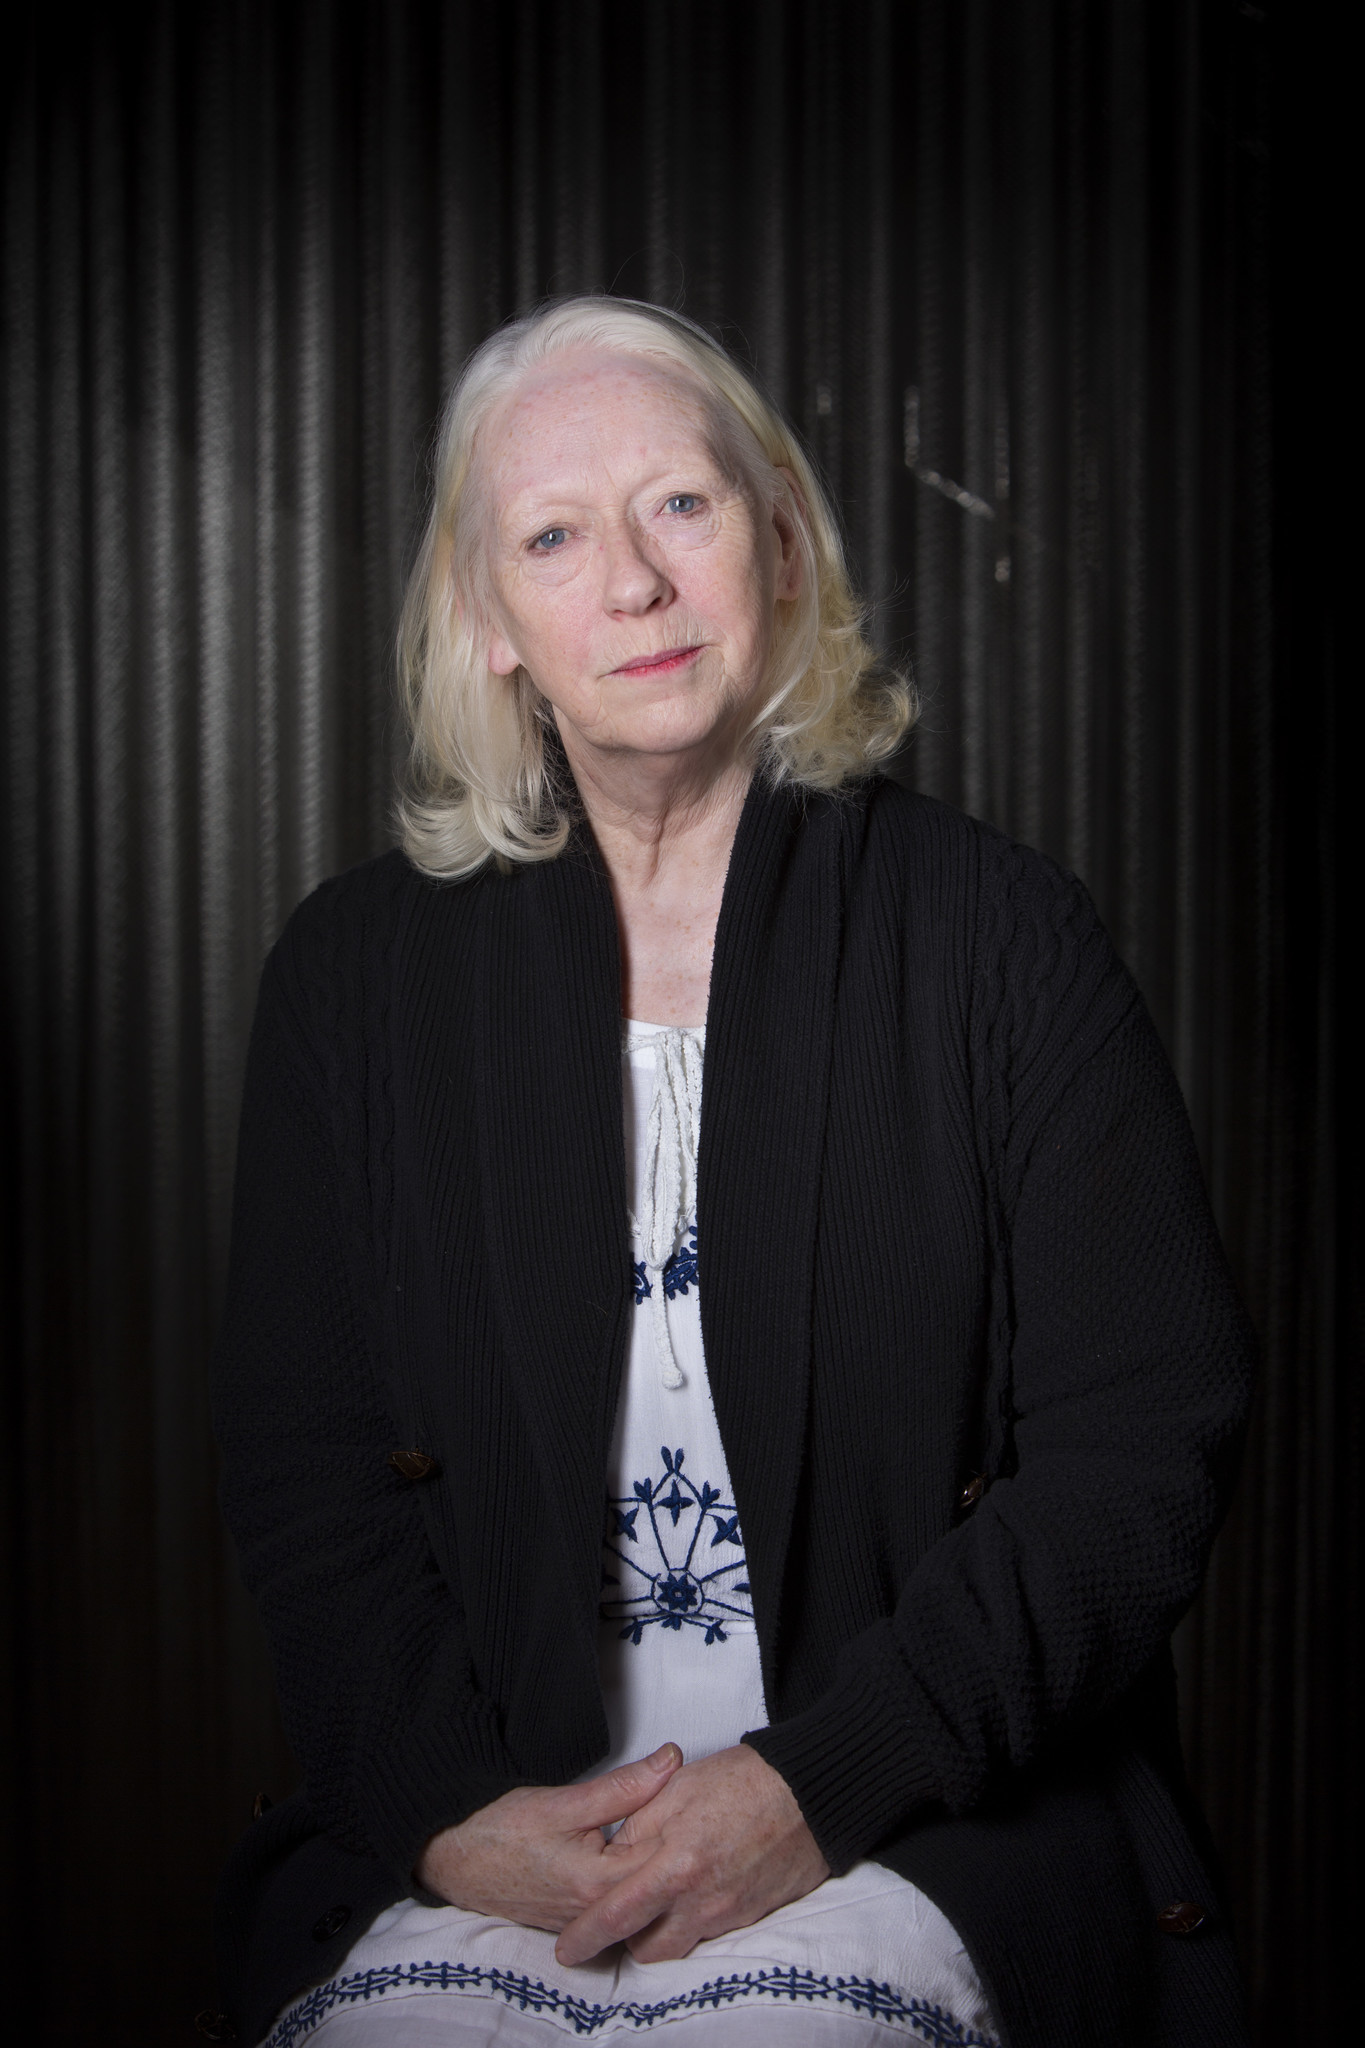 Marie Mullen, photographed at the Mark Taper Forum in Los Angeles.